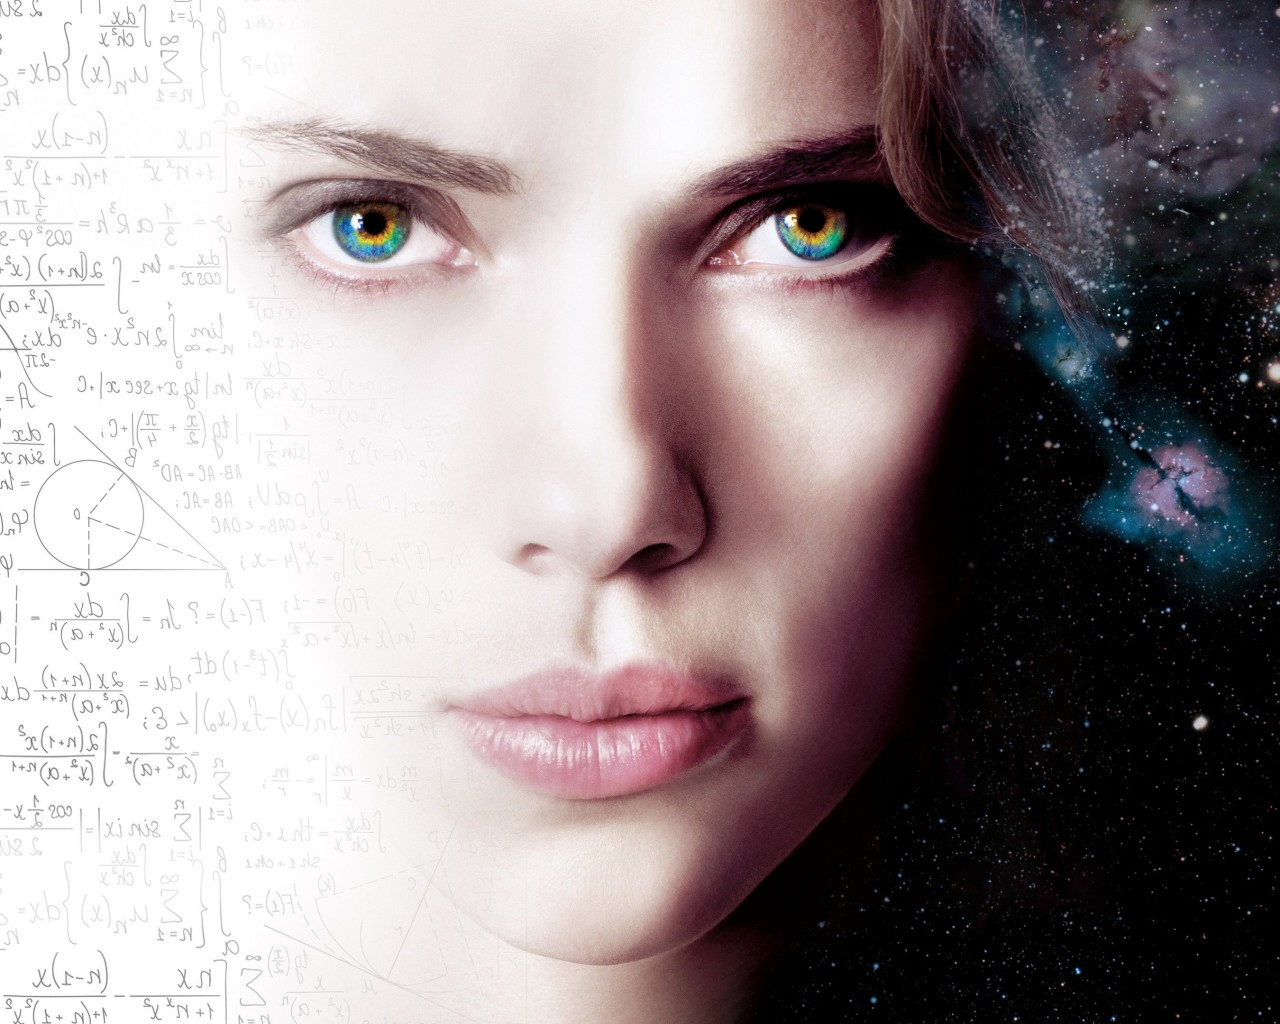 Scarlett Johansson As Lucy Wallpaper for Desktop 1280x1024